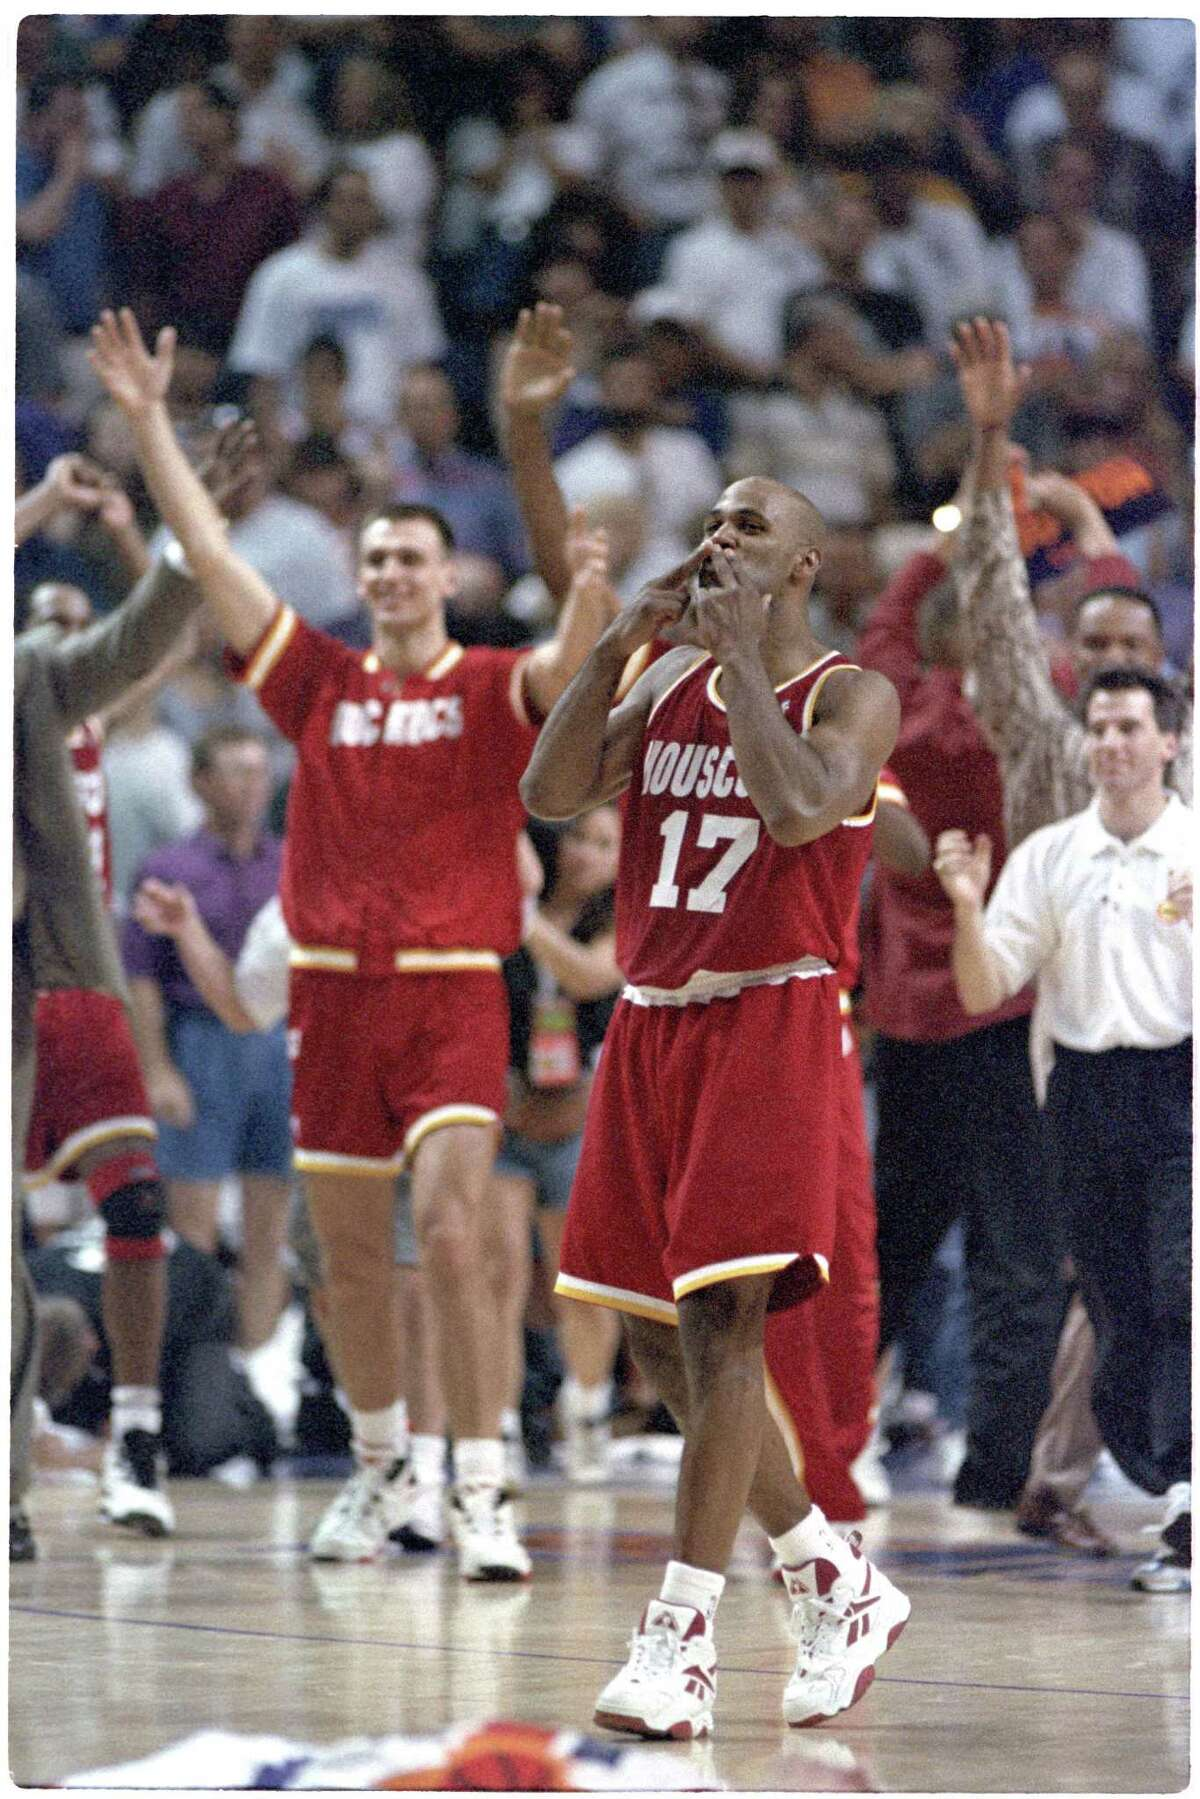 Mario Elie blows the 'Kiss of Death' to the Phoenix bench after his go-ahead 3-pointer during the final seconds of Game 7 of the 1995 Western Conference semifinals May 20, 1995, at American West Arena in Phoenix. Click through the gallery to relive other memorable moments from the Rockets' two championship runs.